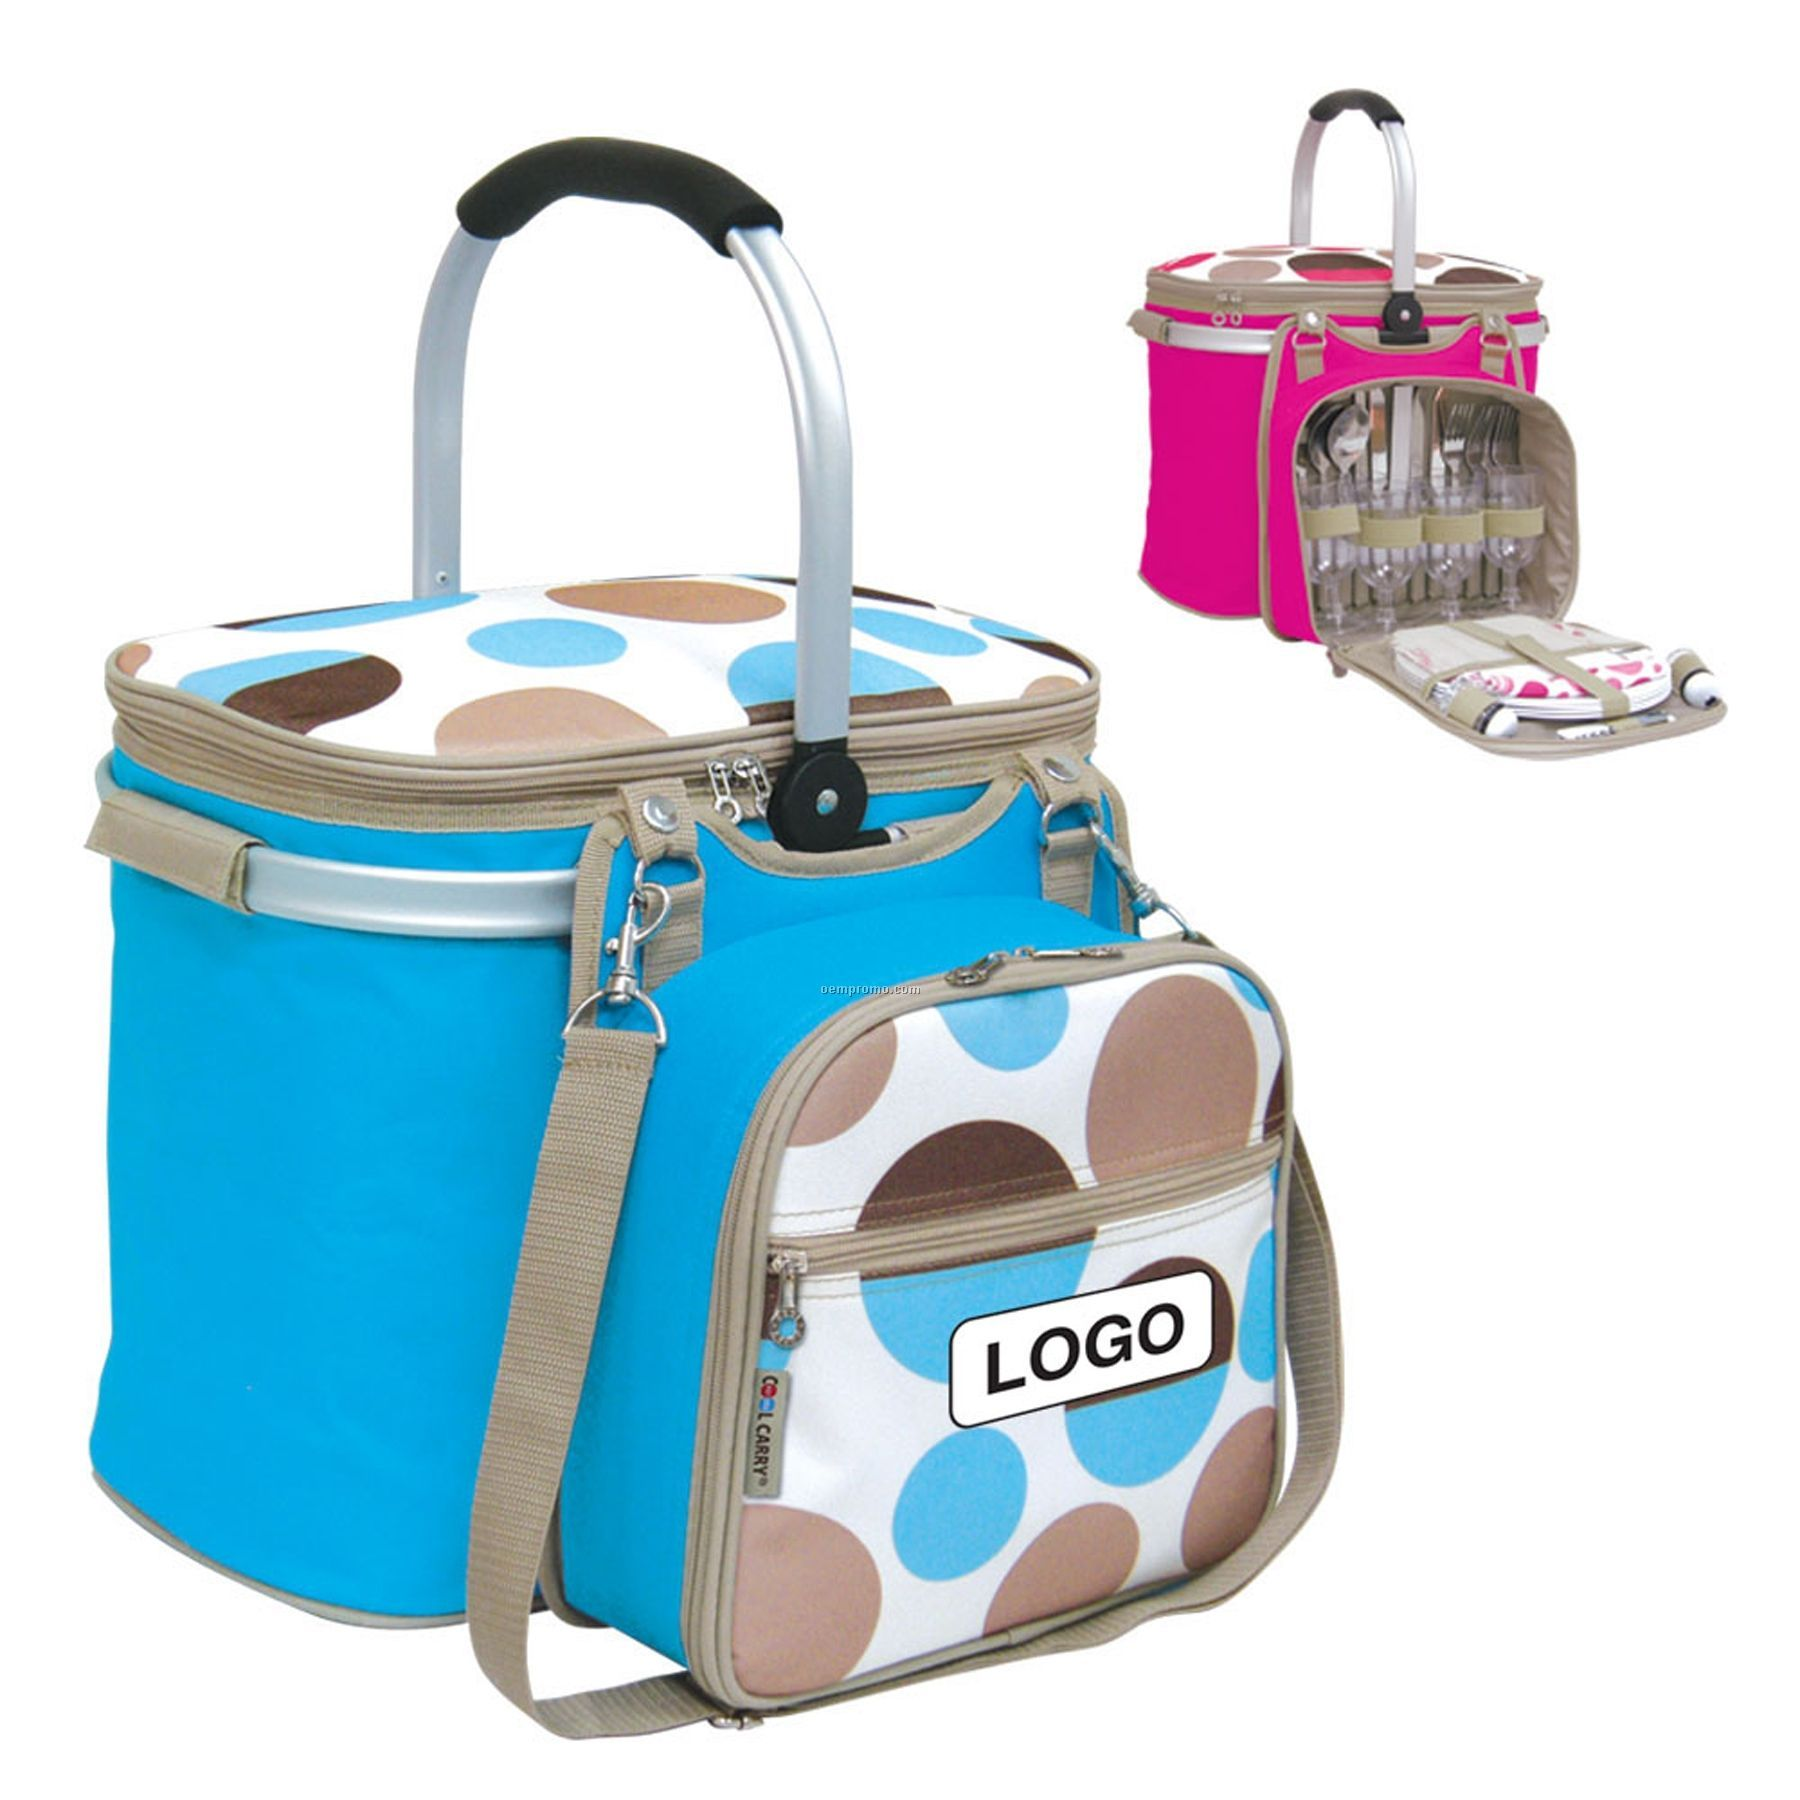 4 Person Insulated Picnic Basket W/ Removable Accessory Bag